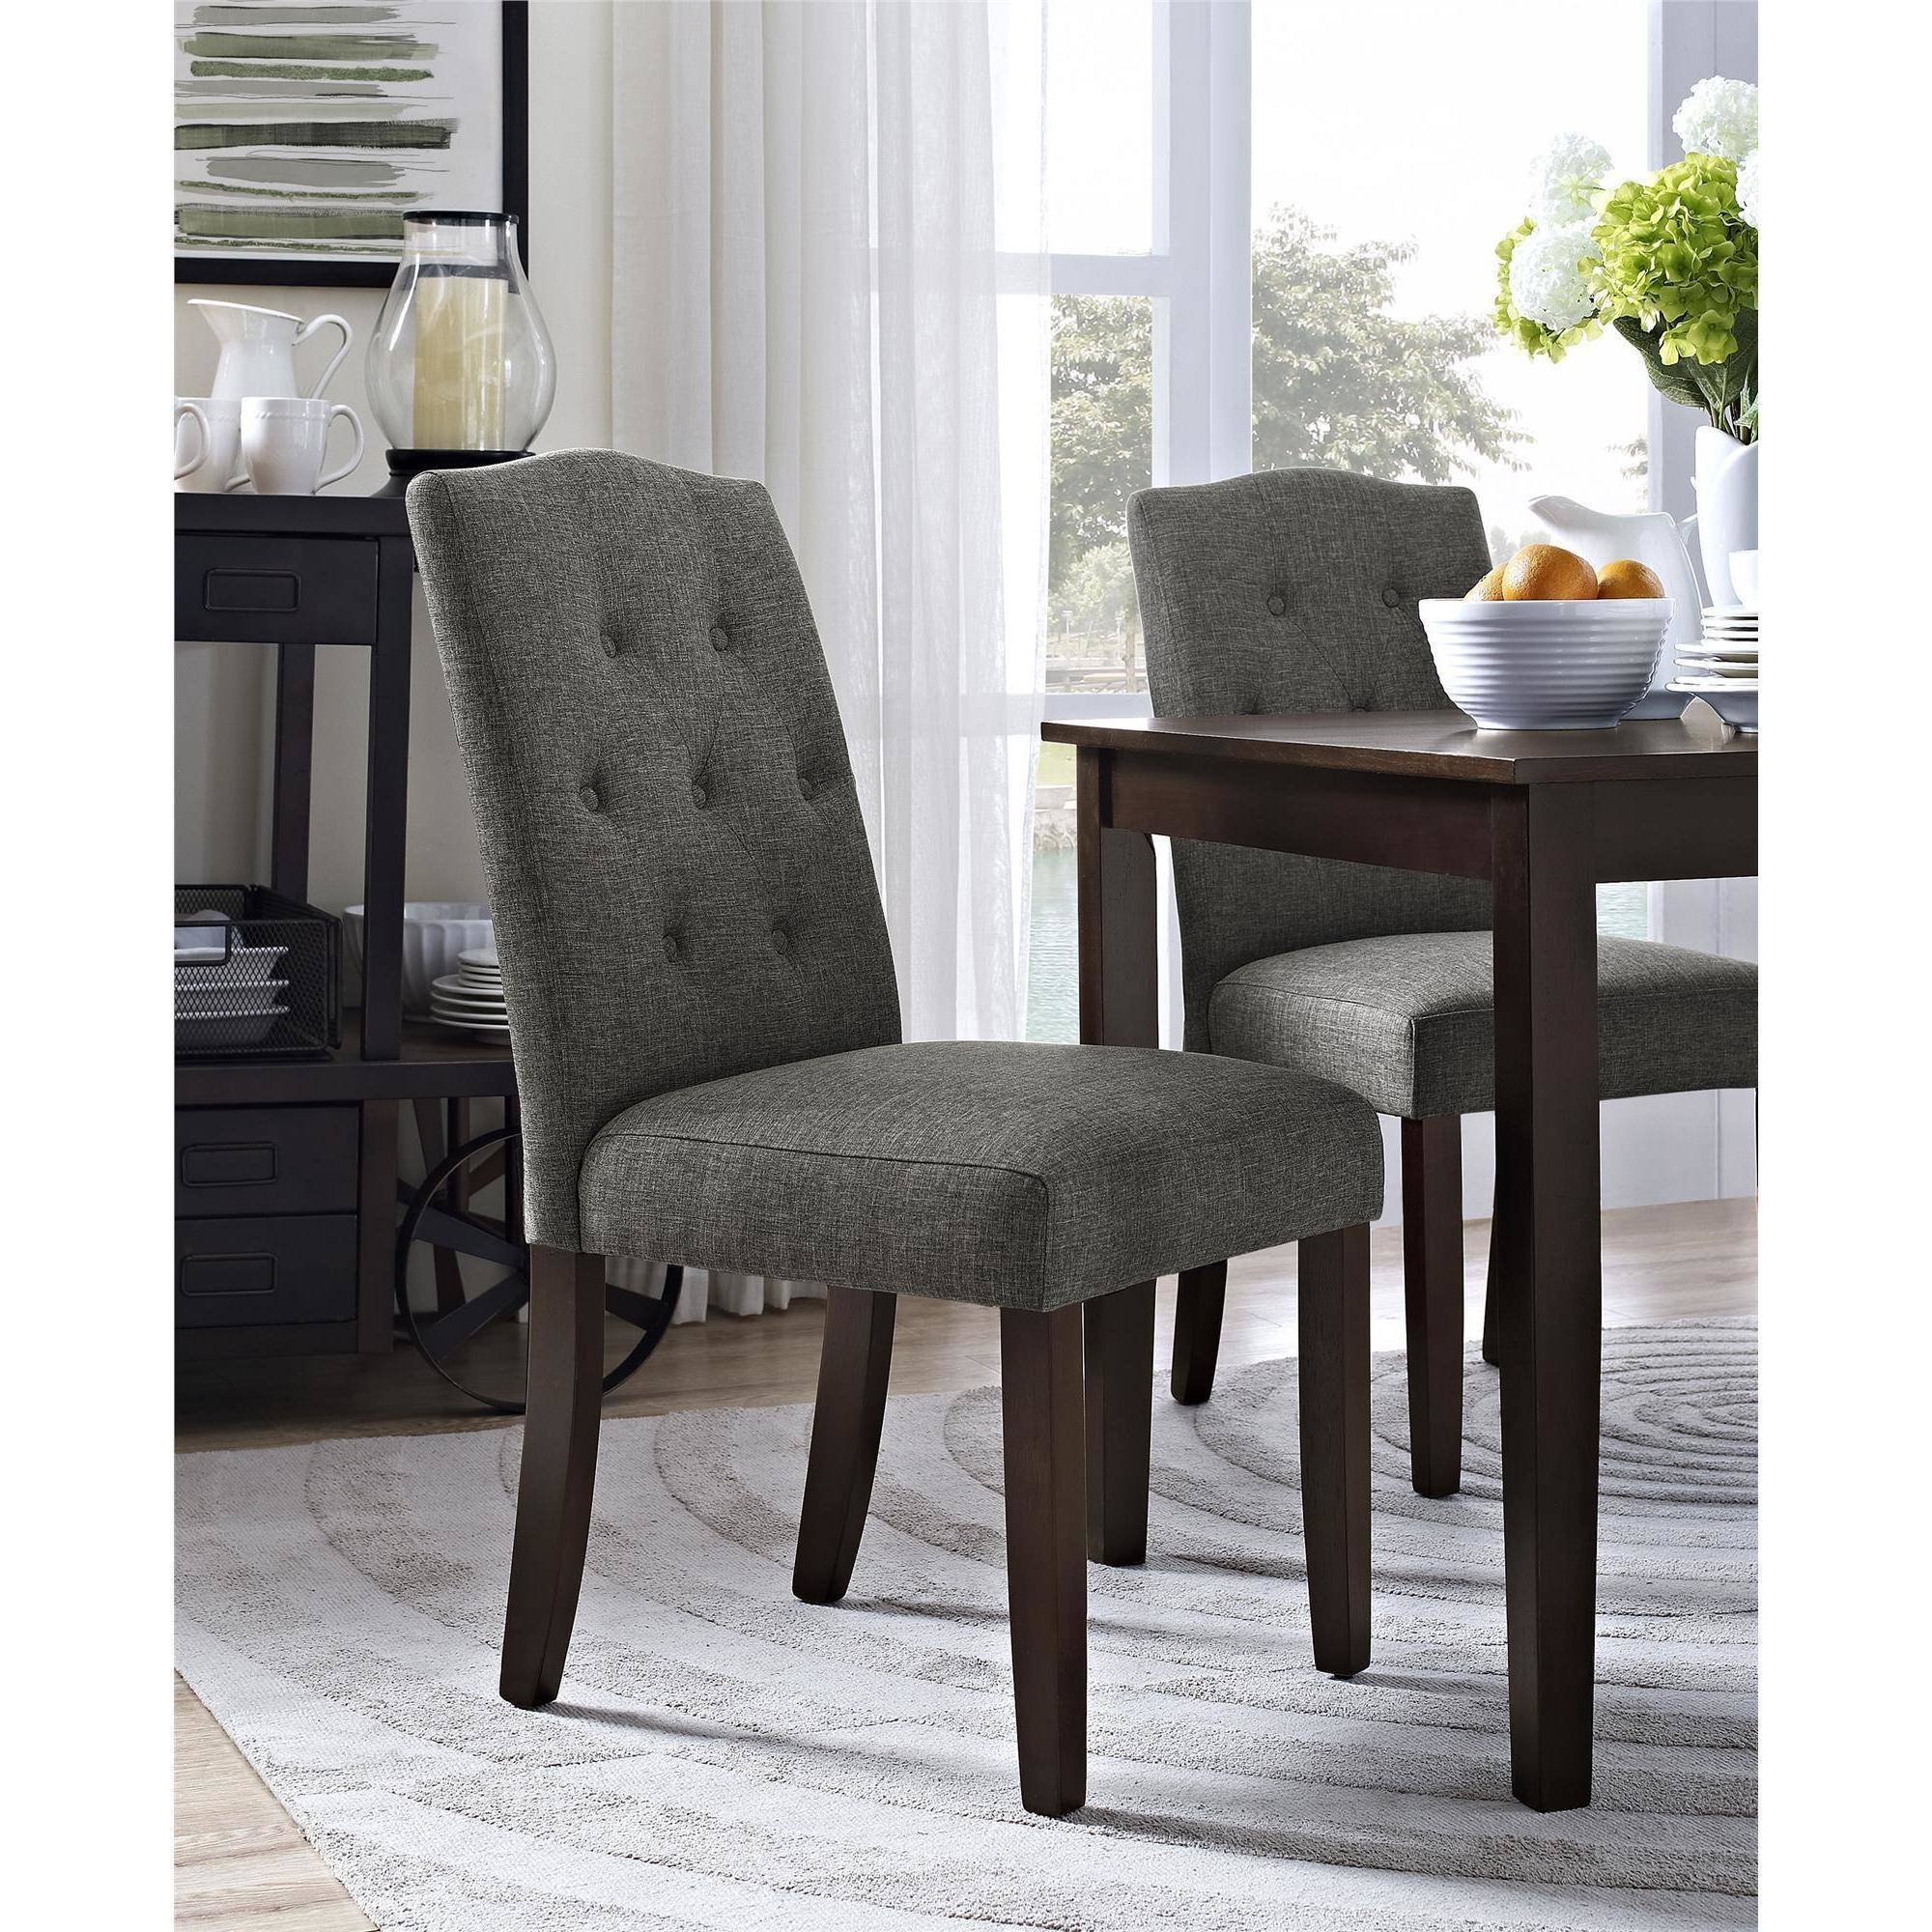 Better Homes and Gardens Parsons Tufted Dining Chair, Gray by